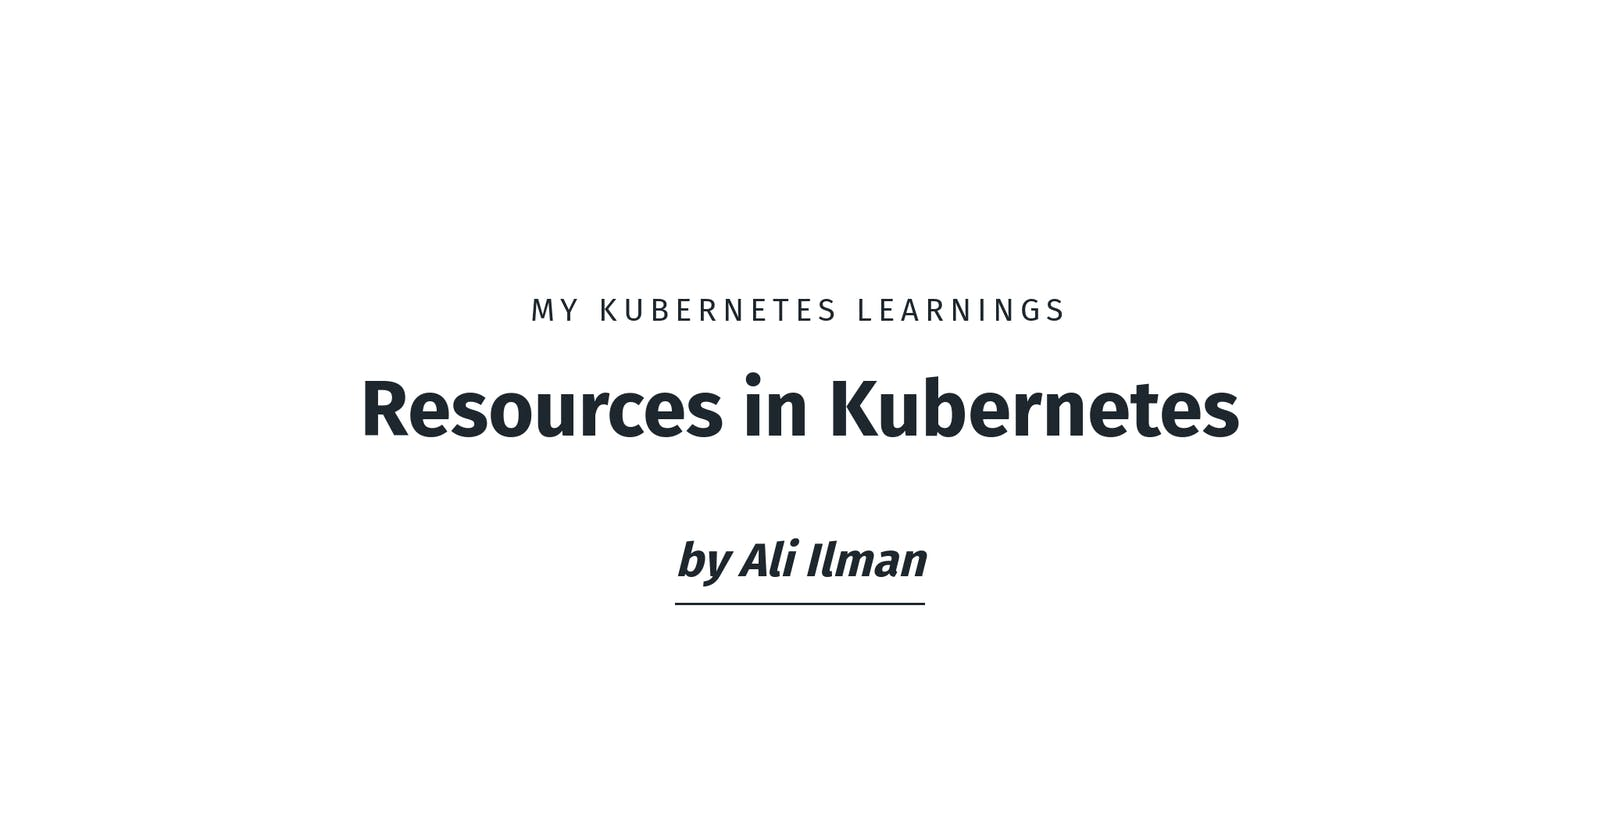 Resources in Kubernetes